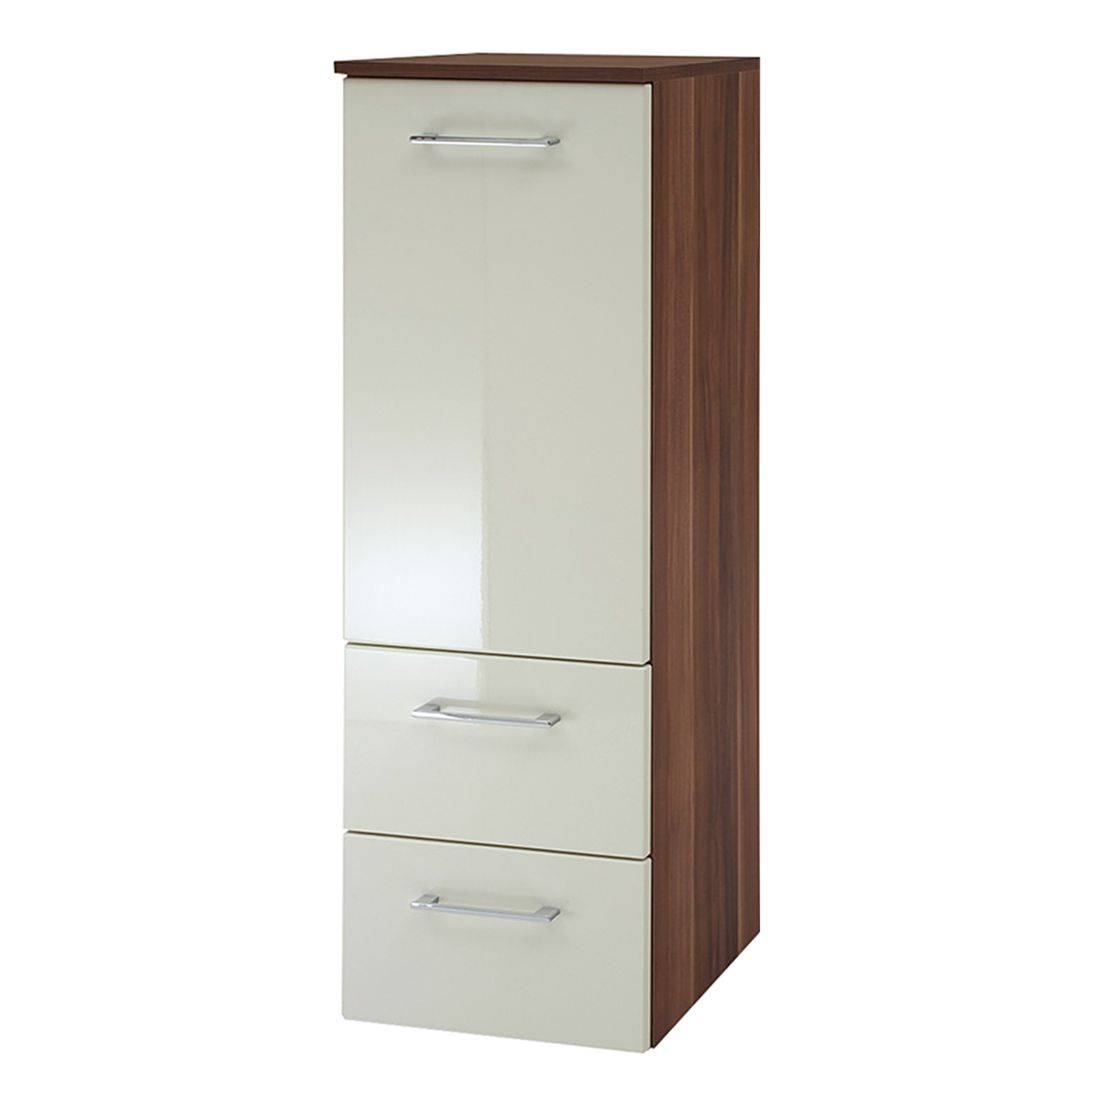 midischrank marino nussbaum dekor creme 2 t rig giessbach g nstig kaufen. Black Bedroom Furniture Sets. Home Design Ideas